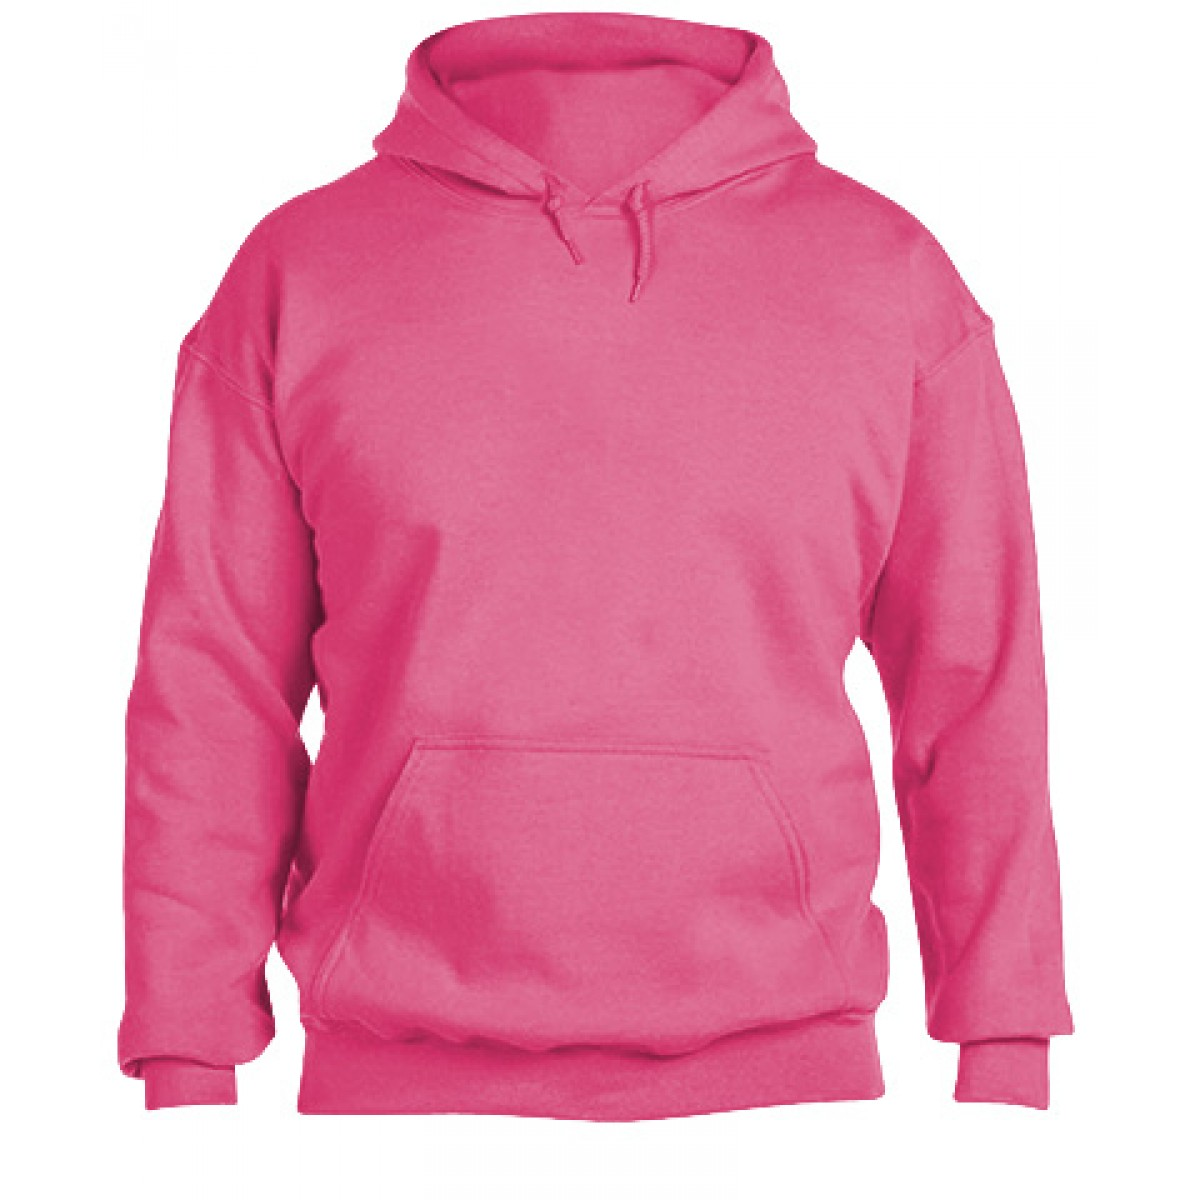 Hooded Sweatshirt 50/50 Heavy Safety Pink-Safety Pink-XL